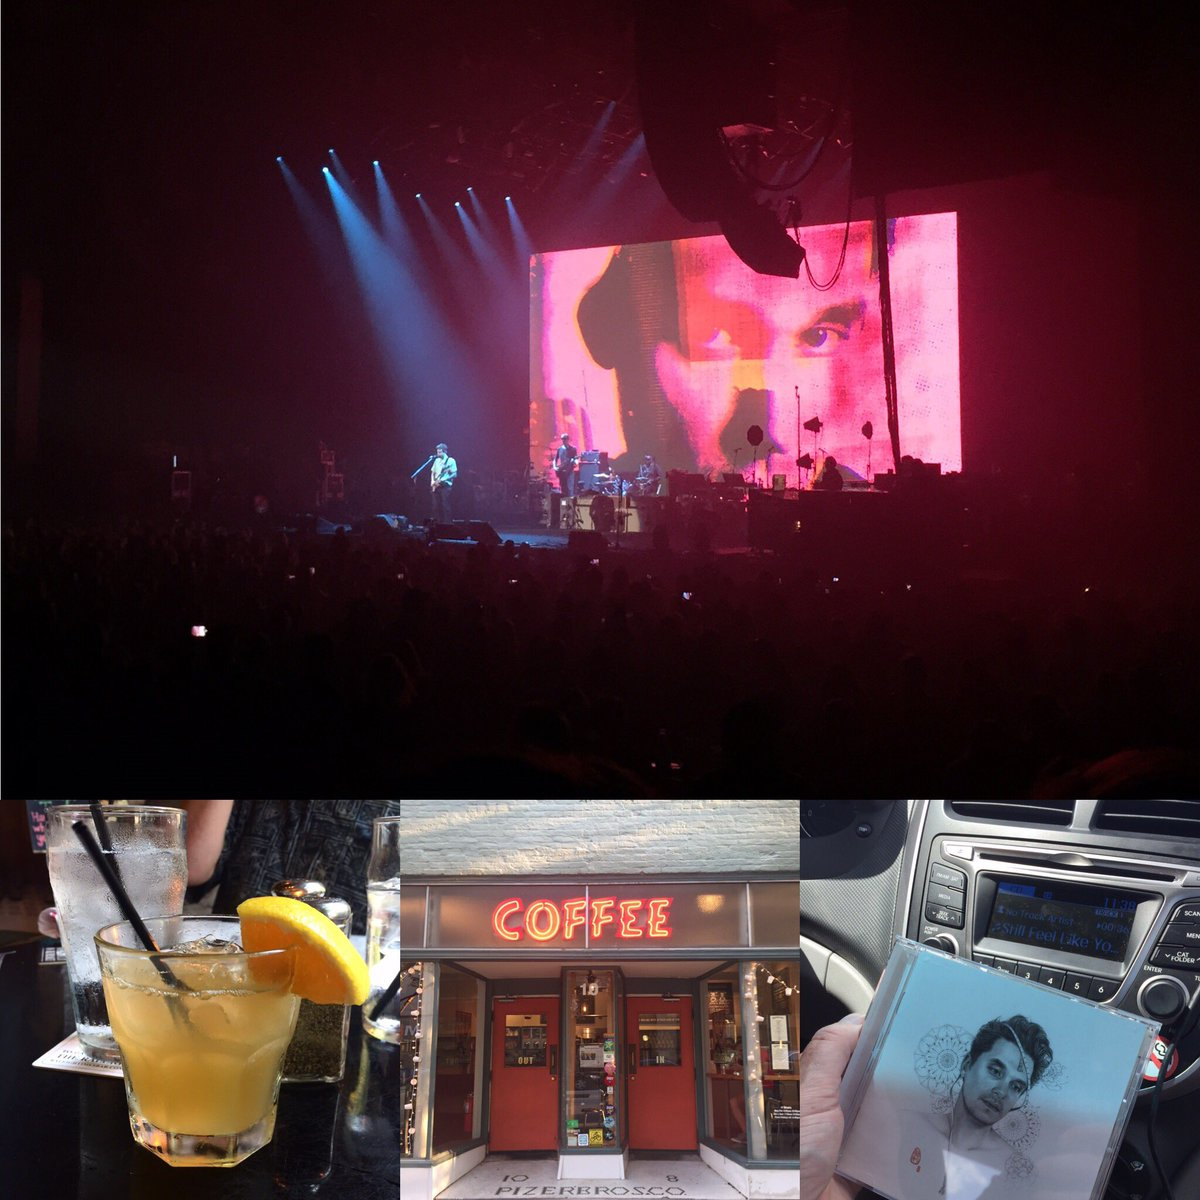 Status #globetrotting4Mayer the most epic #setlist to date, great banter from @JohnMayer, but I&#39;ve seen a livelier audience at a funeral <br>http://pic.twitter.com/Fp4r55sQ1v